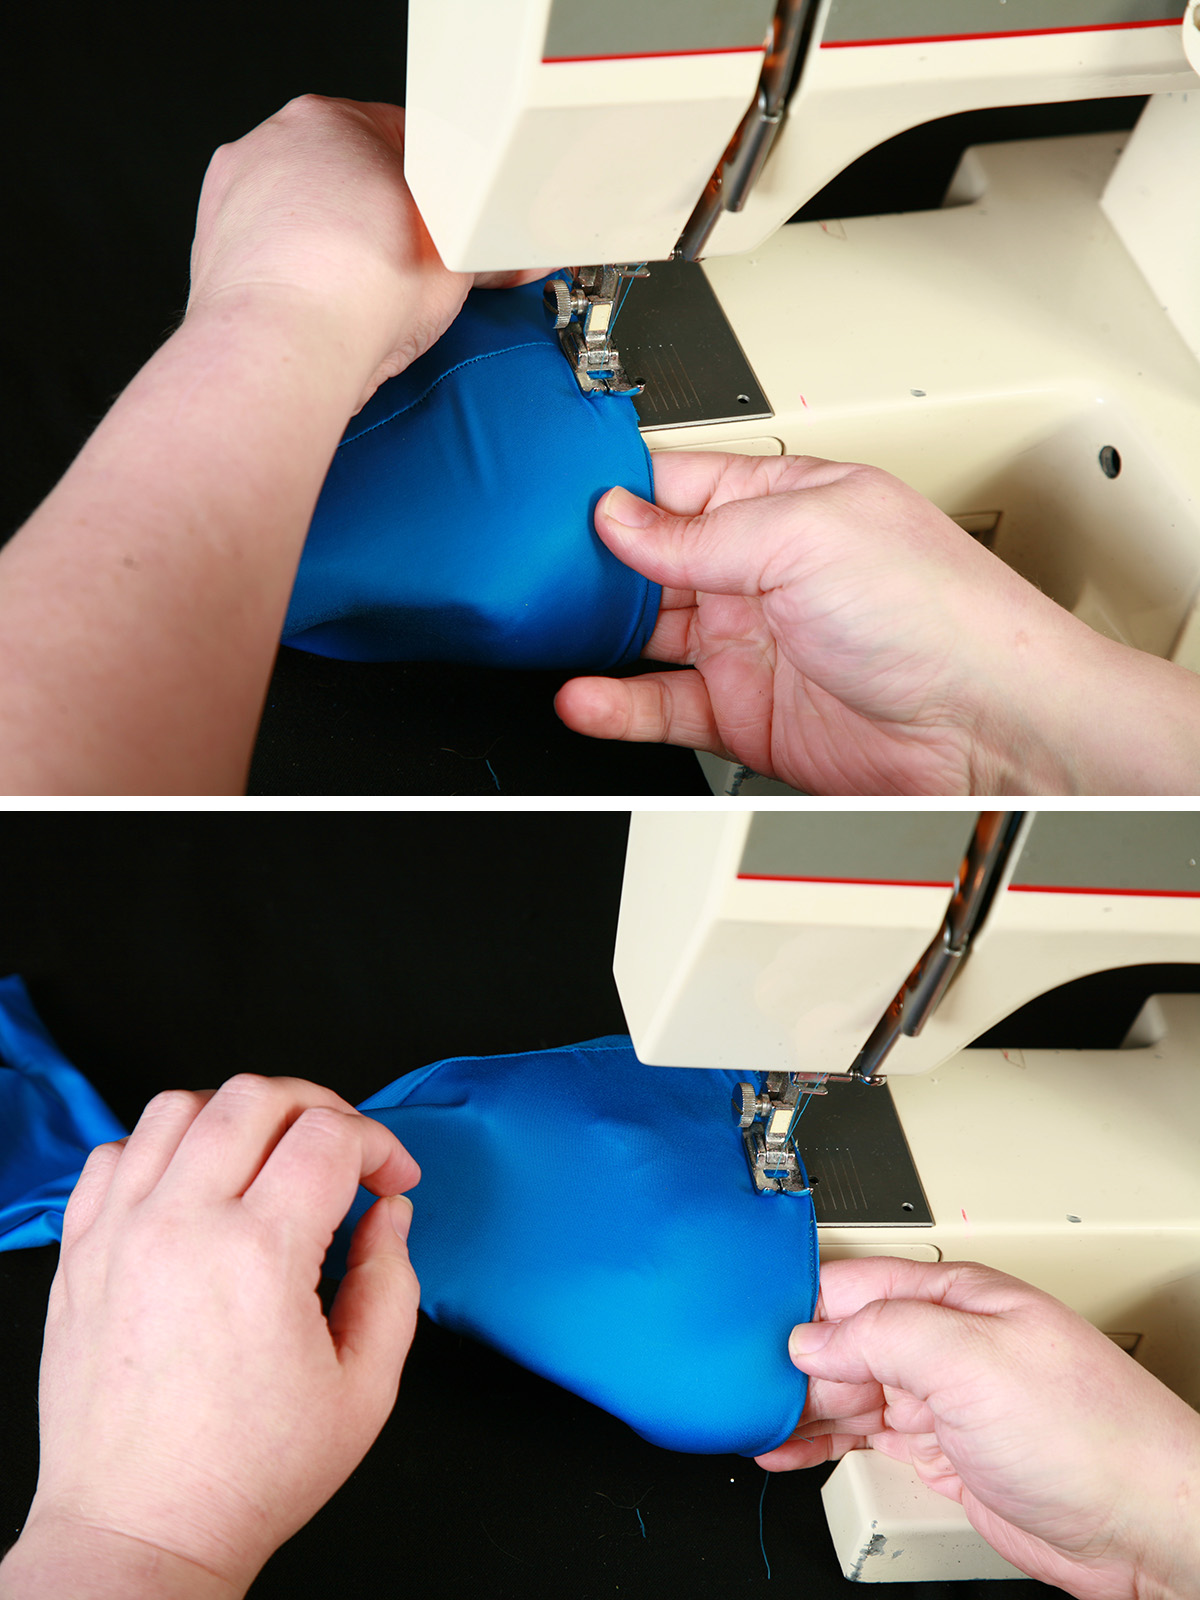 A two part compilation image showing the cuff being sewn to the blue spandex glove.